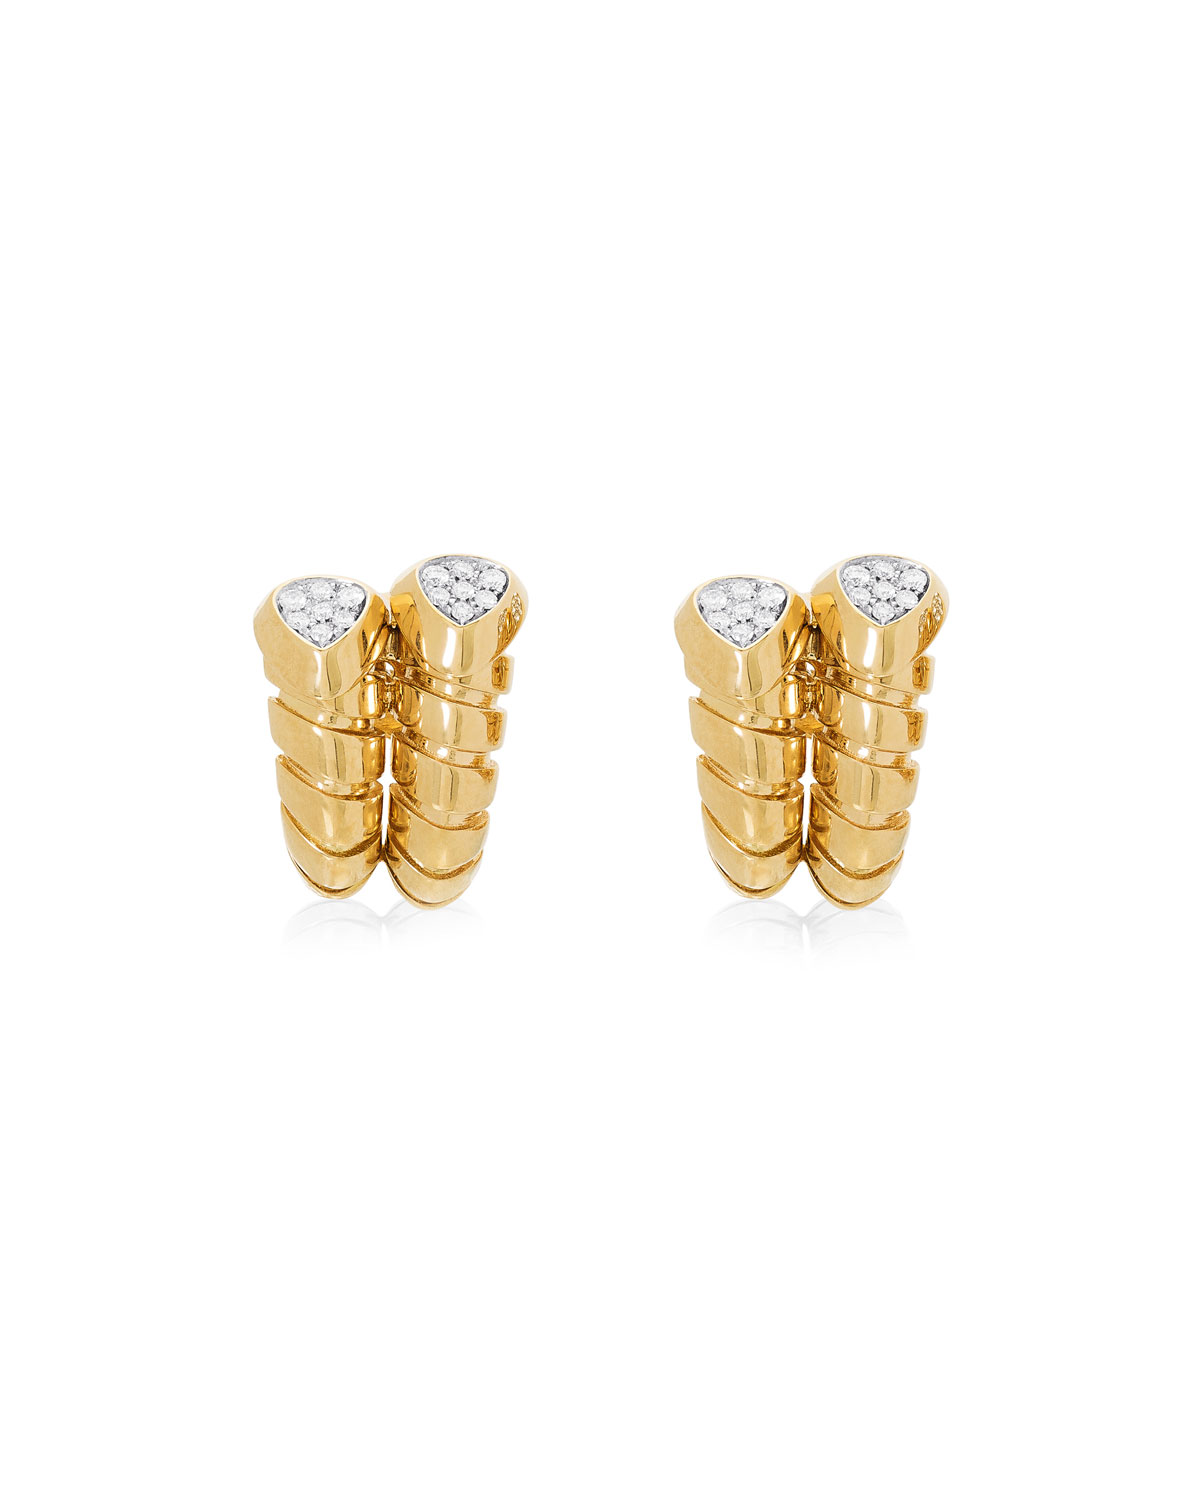 MARINA B Trisola 18K Gold Diamond Huggie Earrings